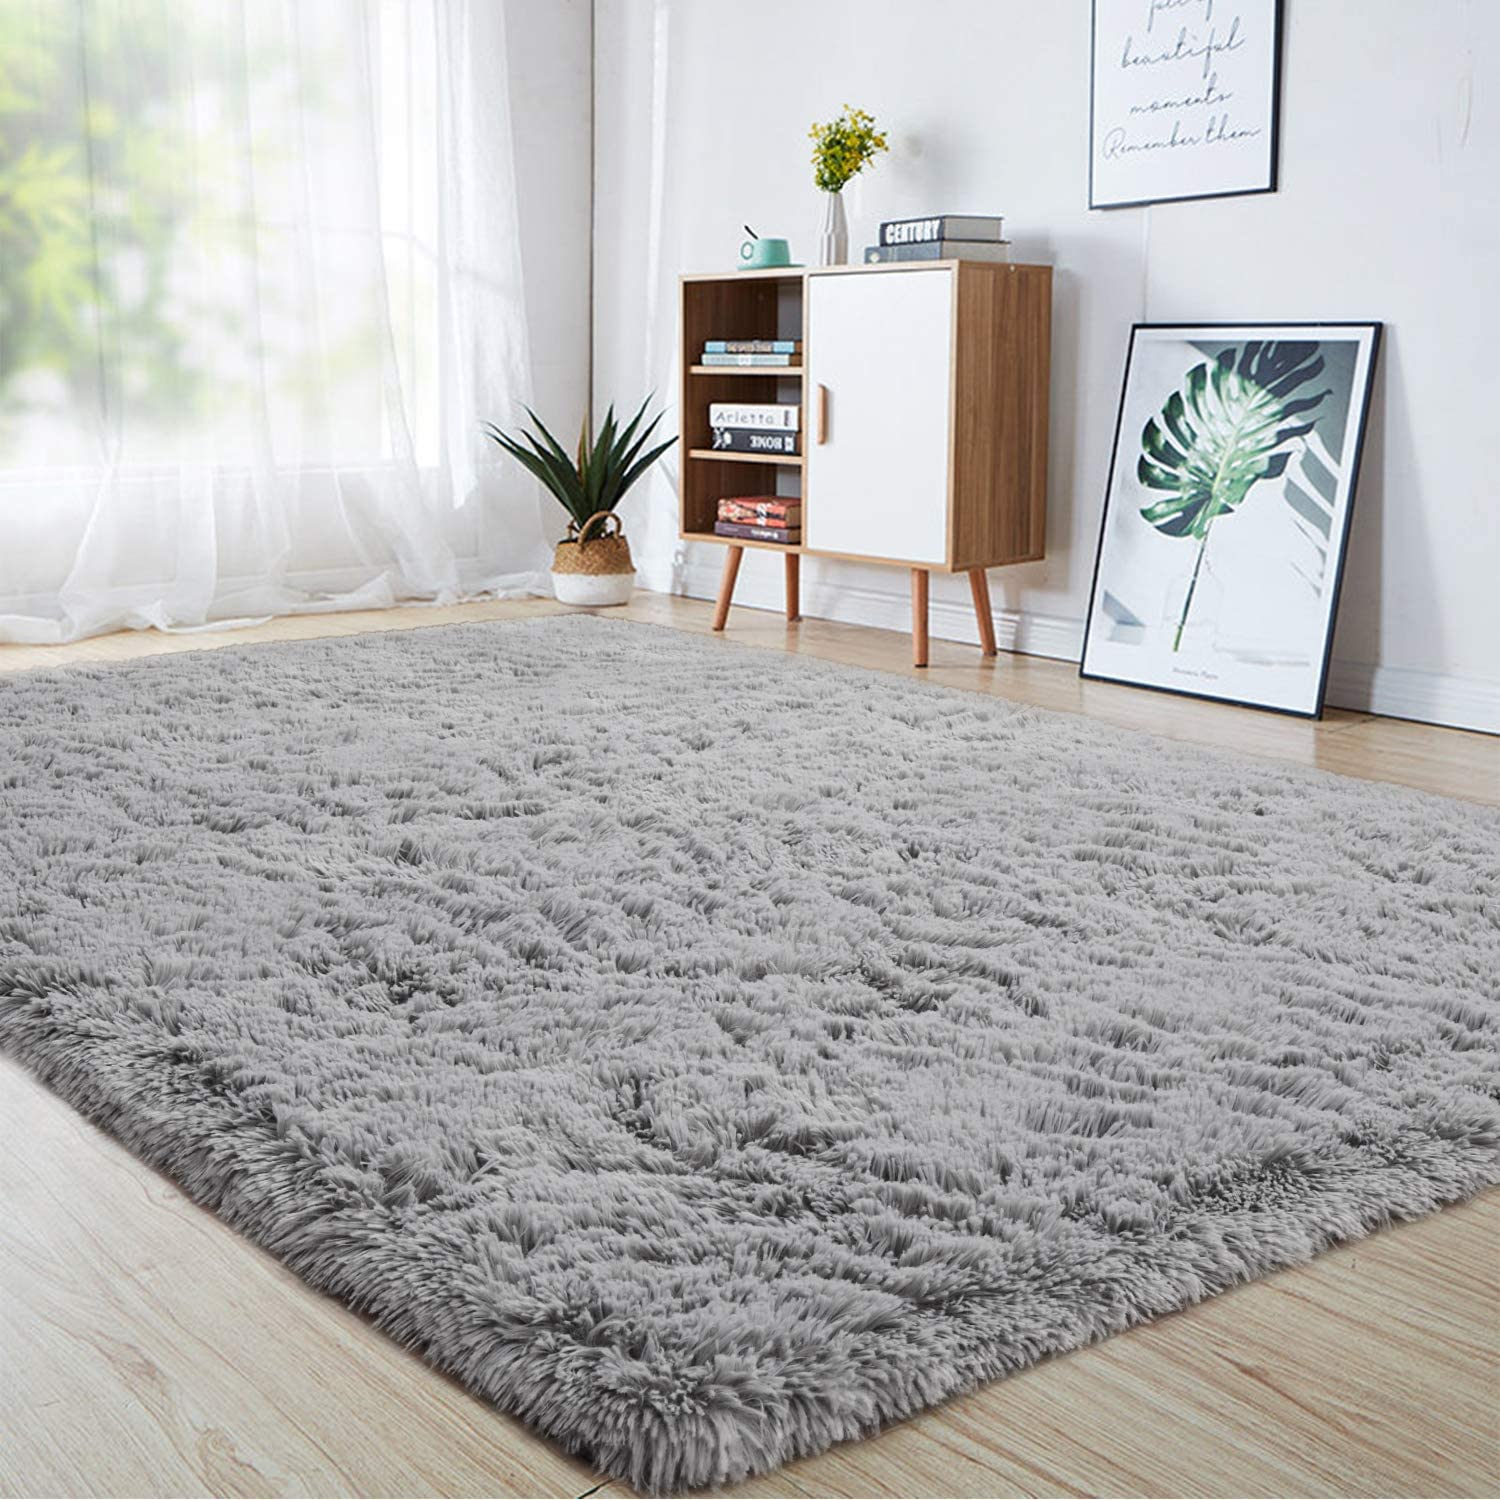 junovo Ultra Soft Area Rugs 6 x 9ft Fluffy Carpets for Bedroom Kids Girls Boys Baby Living Room Shaggy Floor Nursery Rug Home Decor Mats, Grey